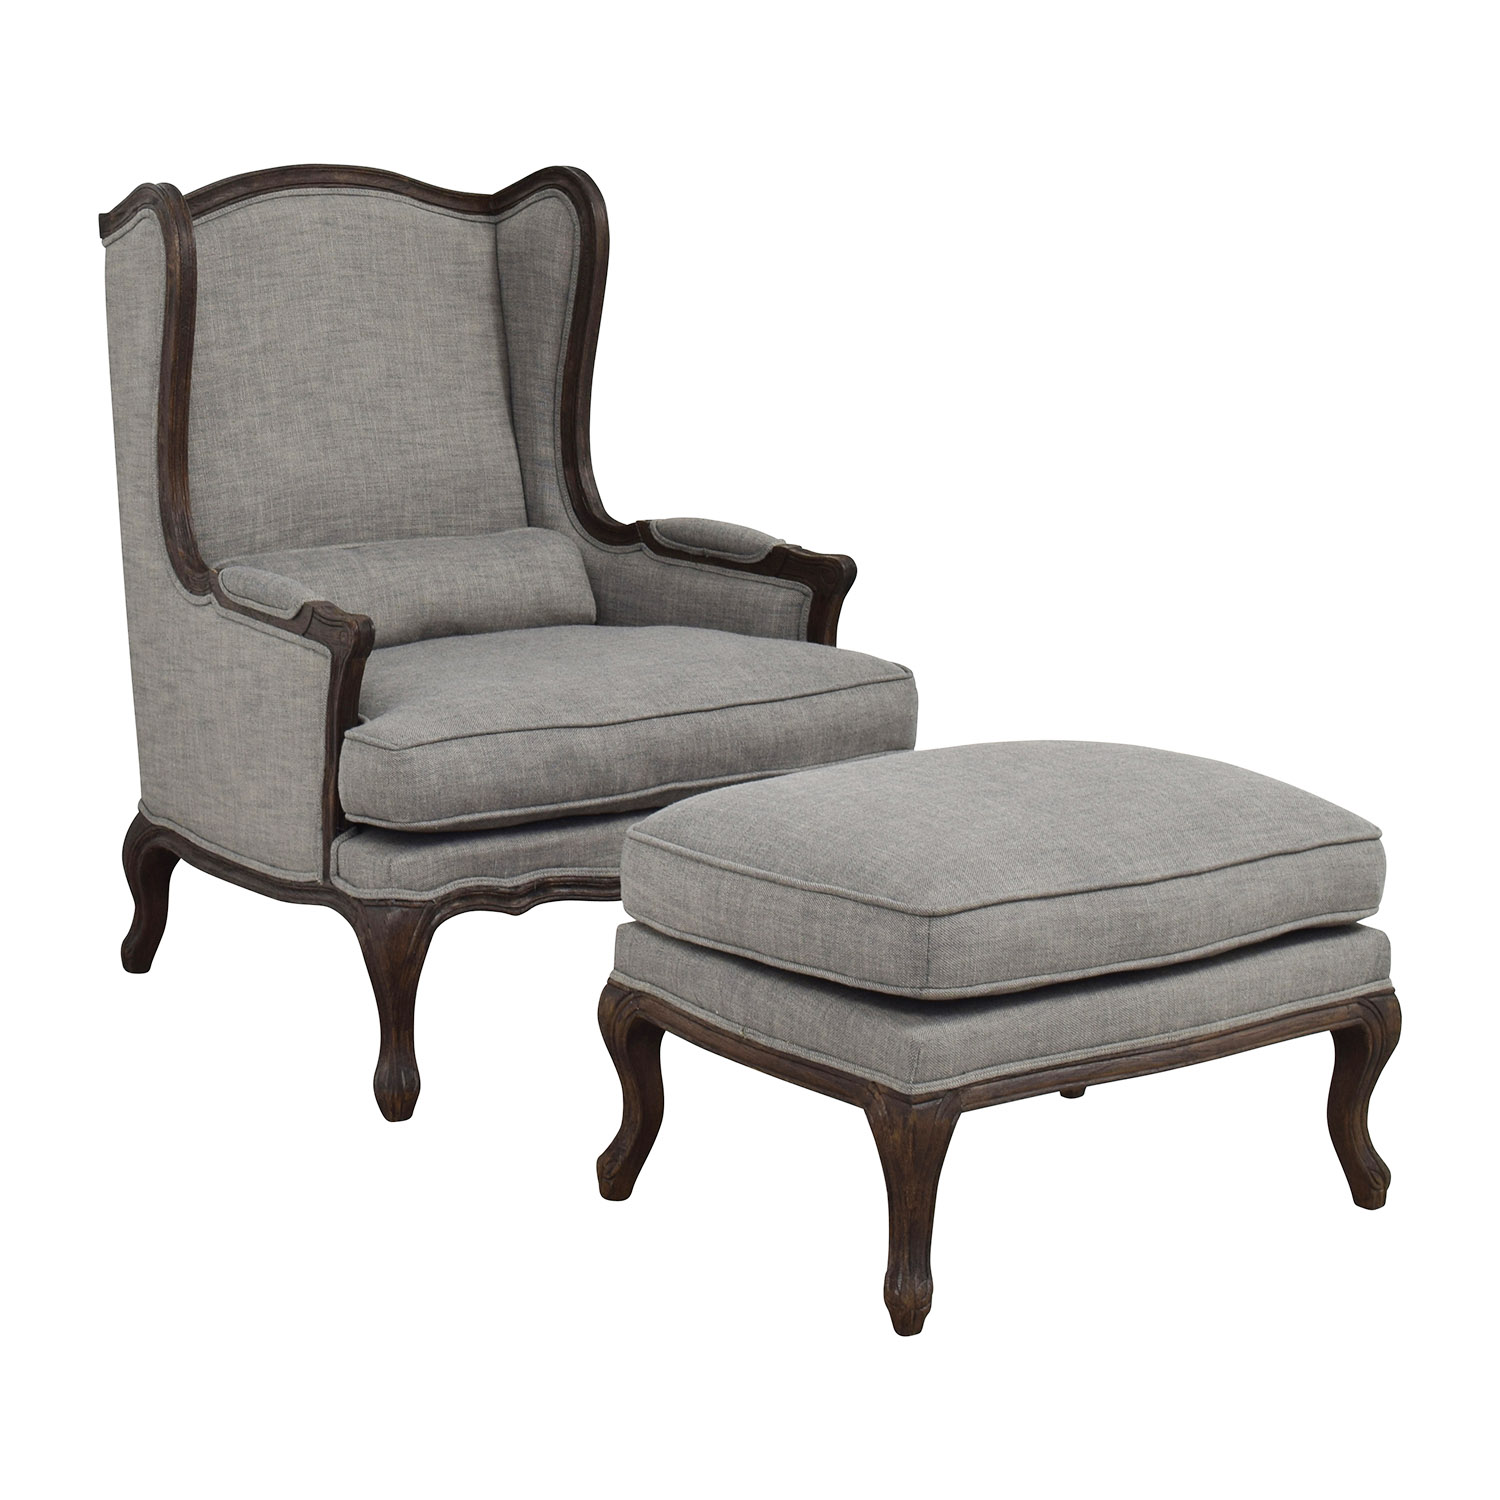 100 [ Restoration Hardware Professor Chair ]